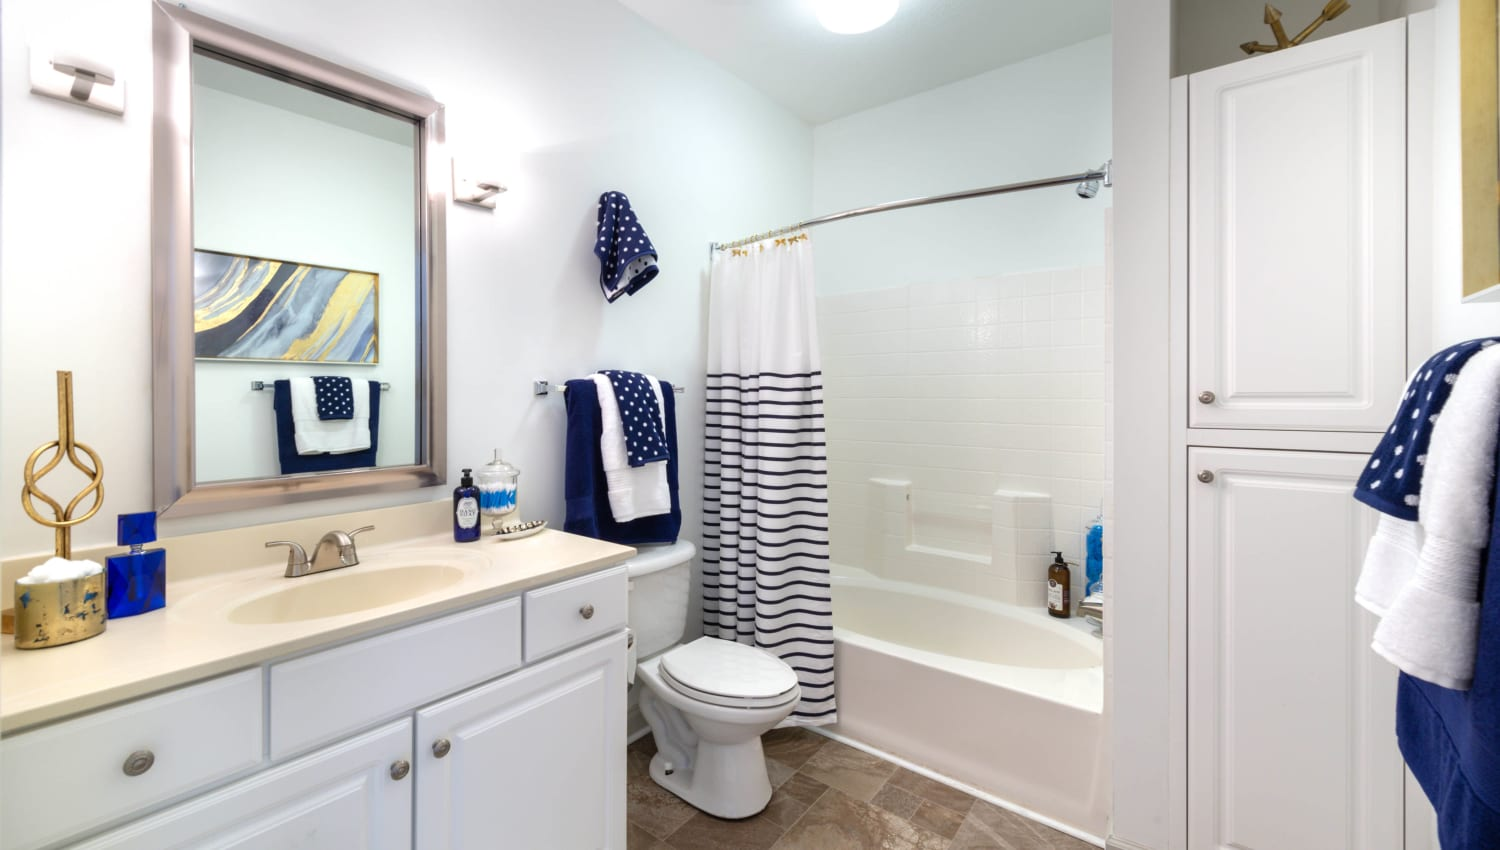 Model home's master bathroom with a tiled shower and extra cupboard storage at Olympus Carrington in Pooler, Georgia